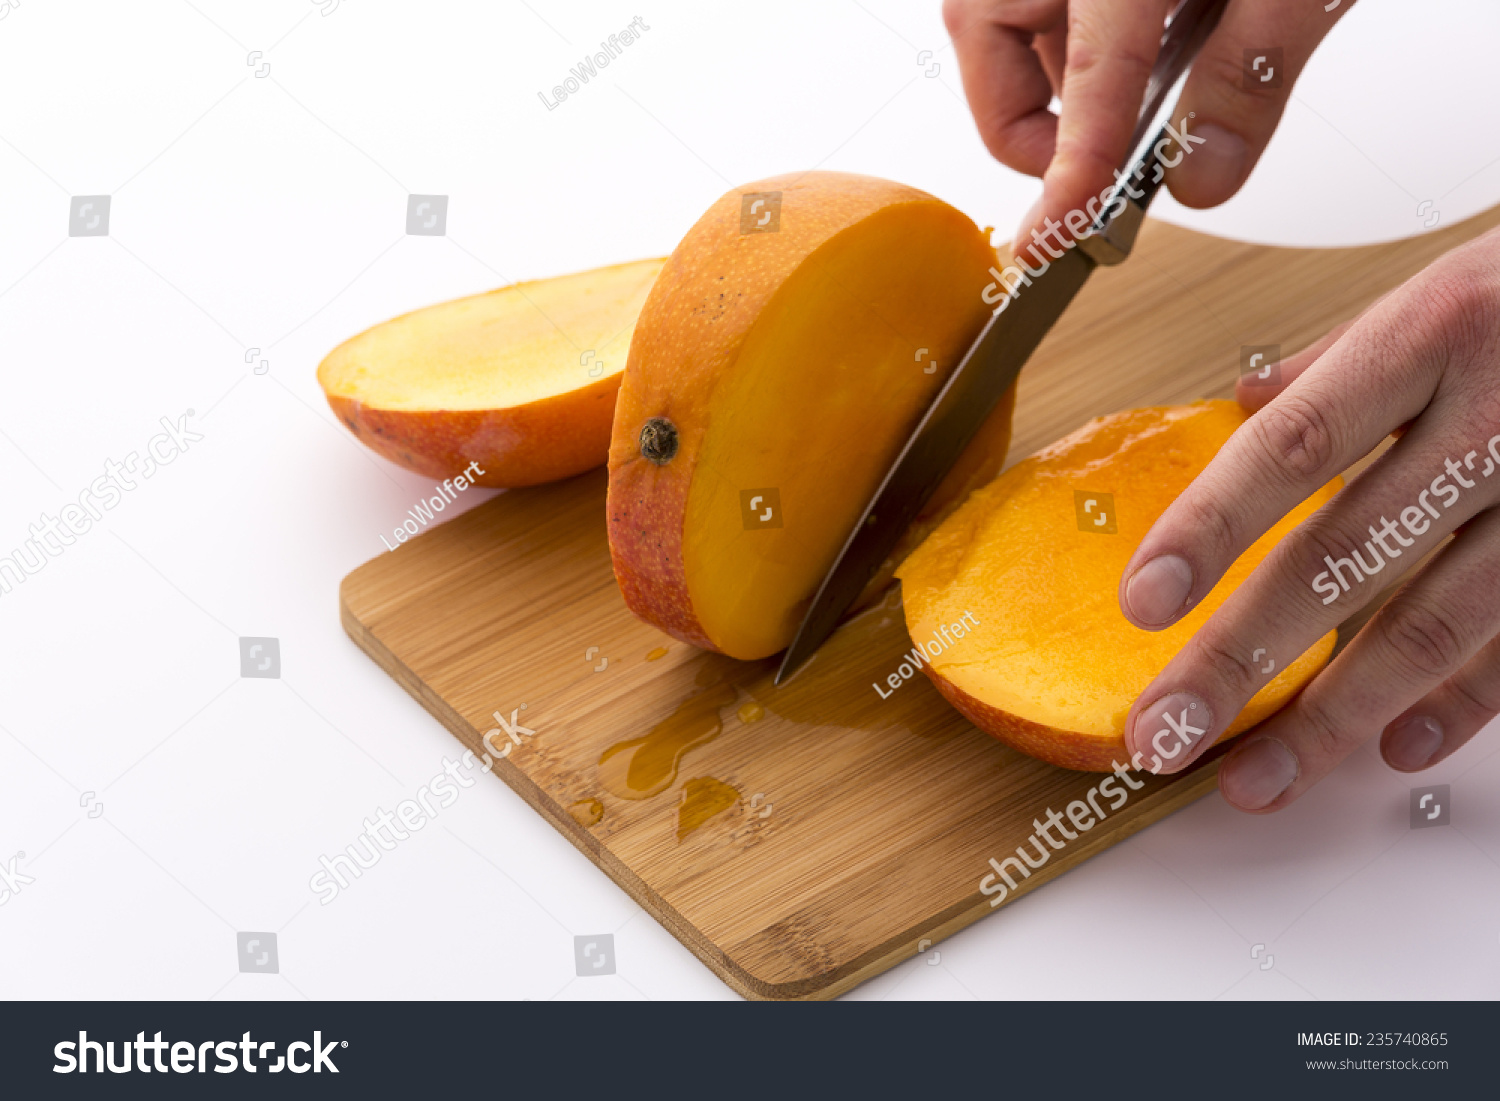 Trisecting A Mango With A Second Cut Along Its Oblong, Flat Pit Finger Tips  Trisecting